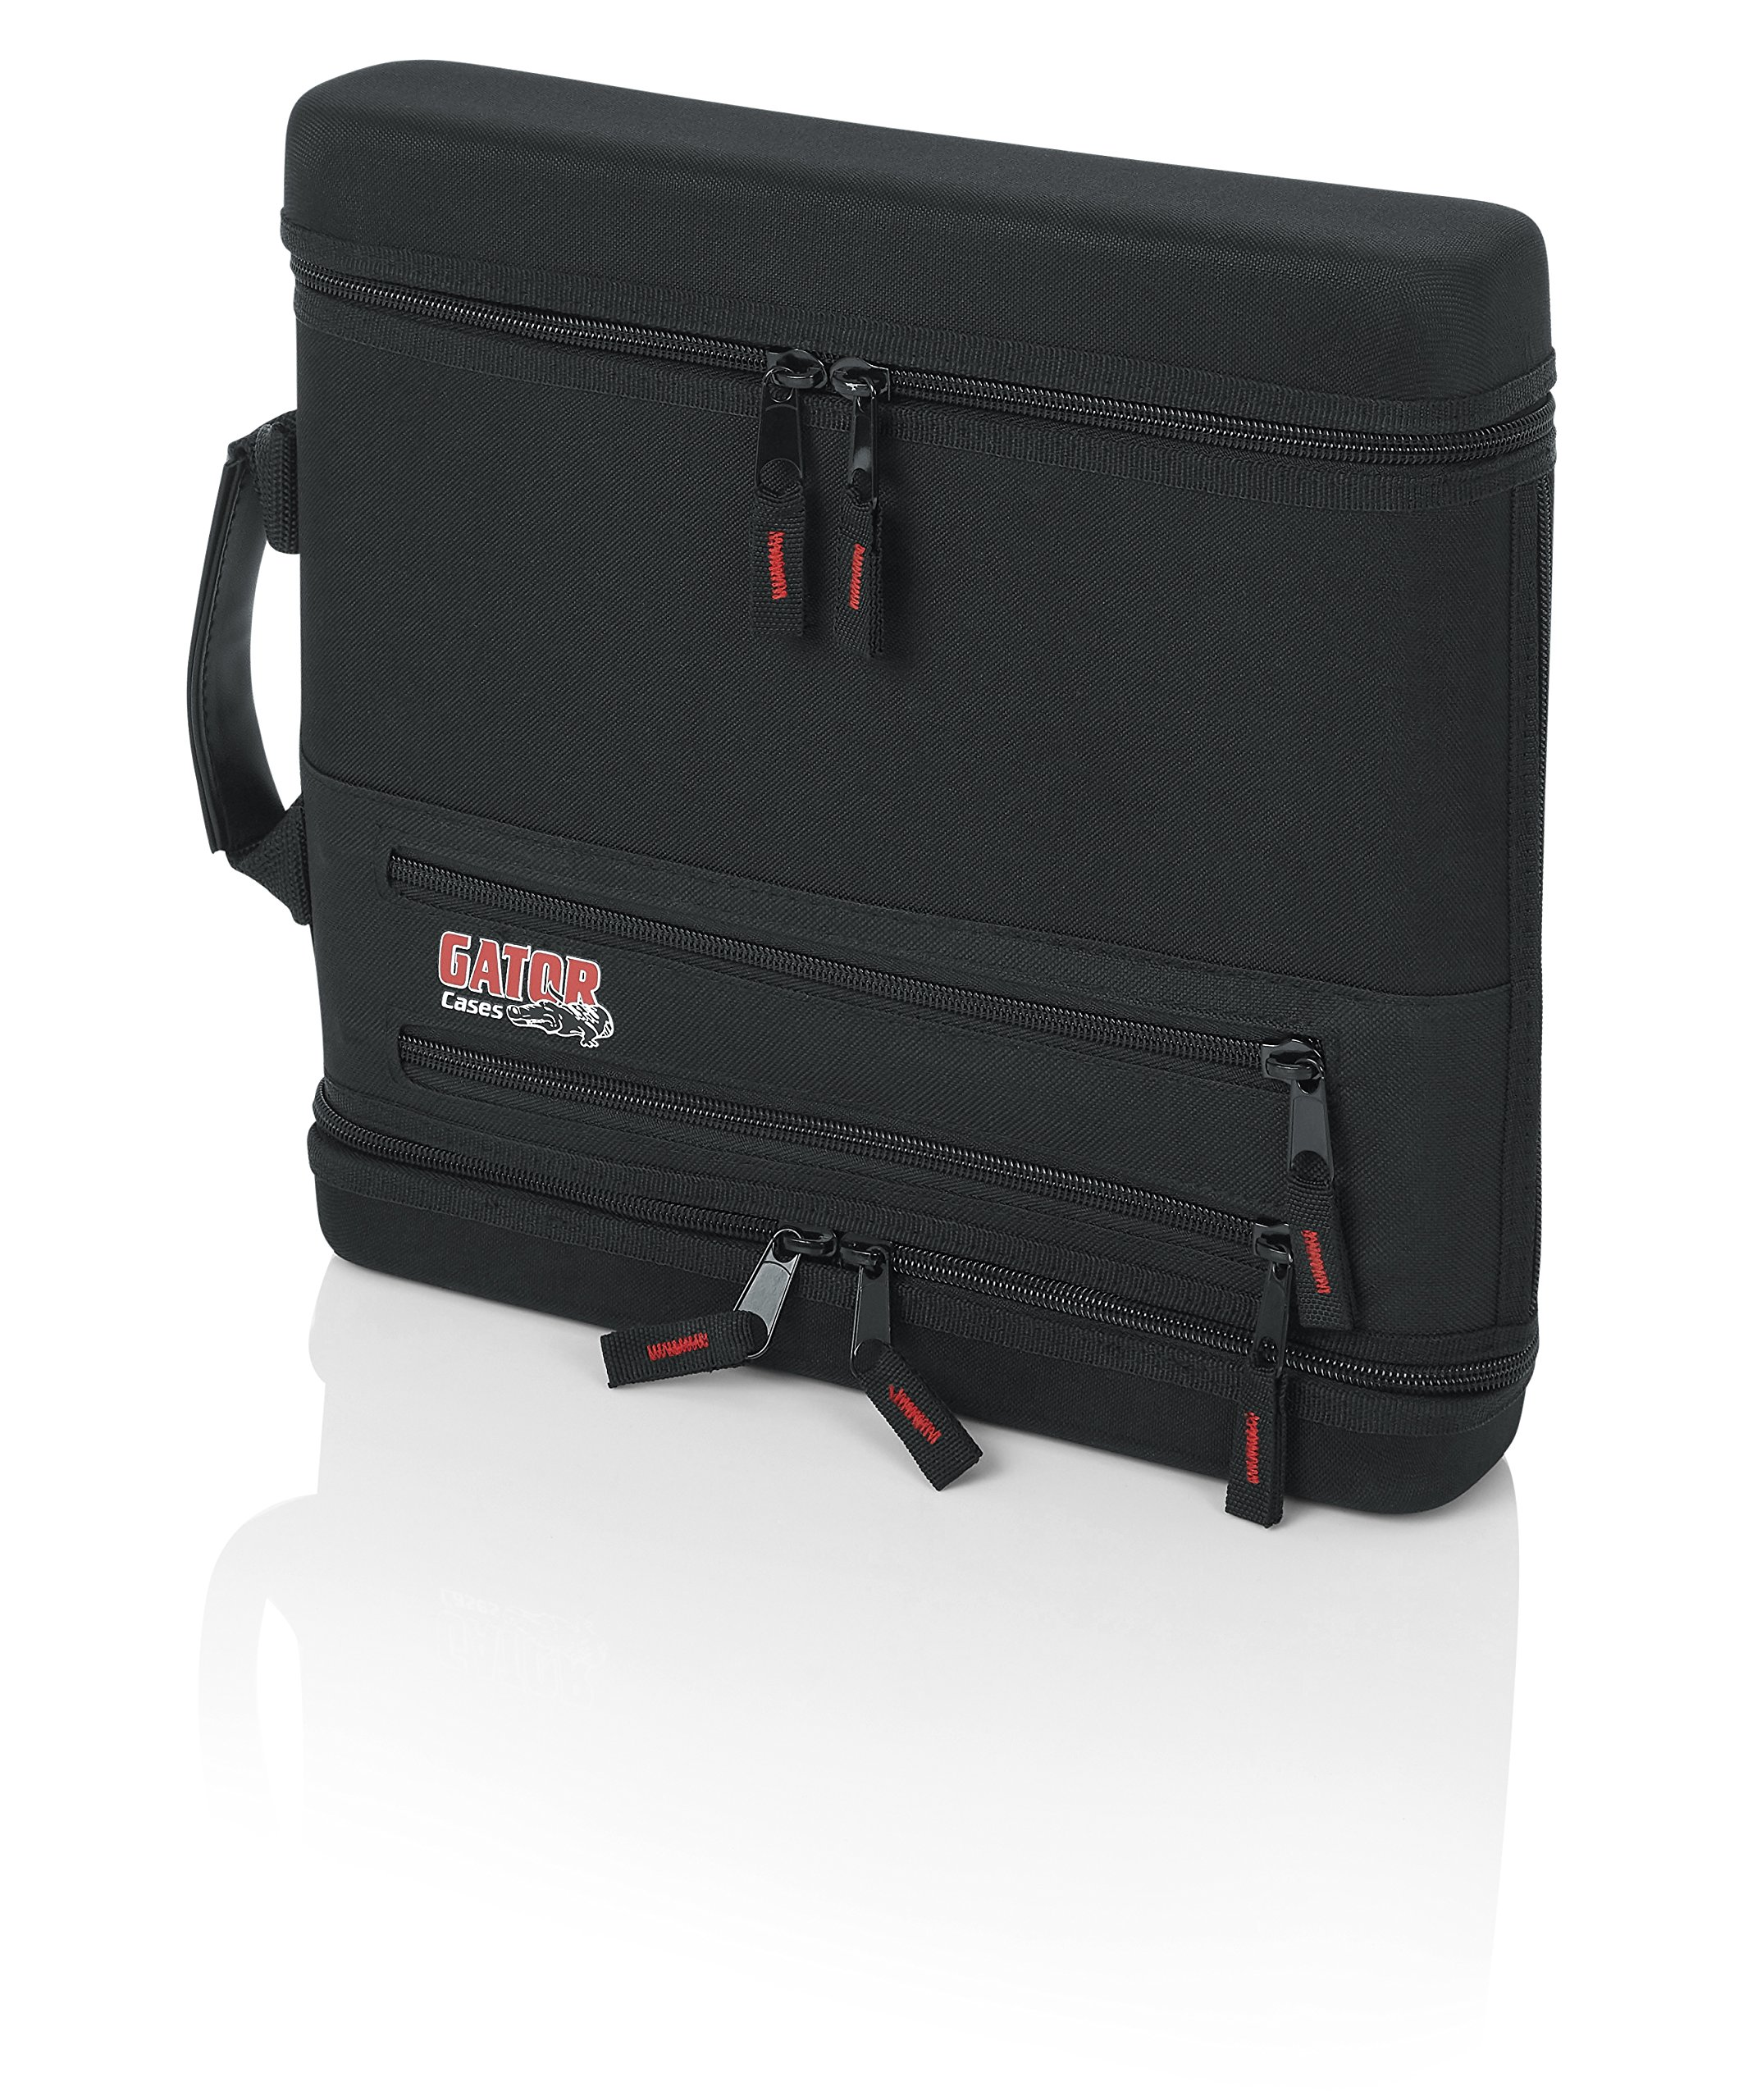 Gator Cases Slim EVA Carry Case for Single Wireless Microphone System; Live-in Style Holds Reciever, Body Pack, and Microphone with Antenna Access (GM-1WEVAA) by Gator